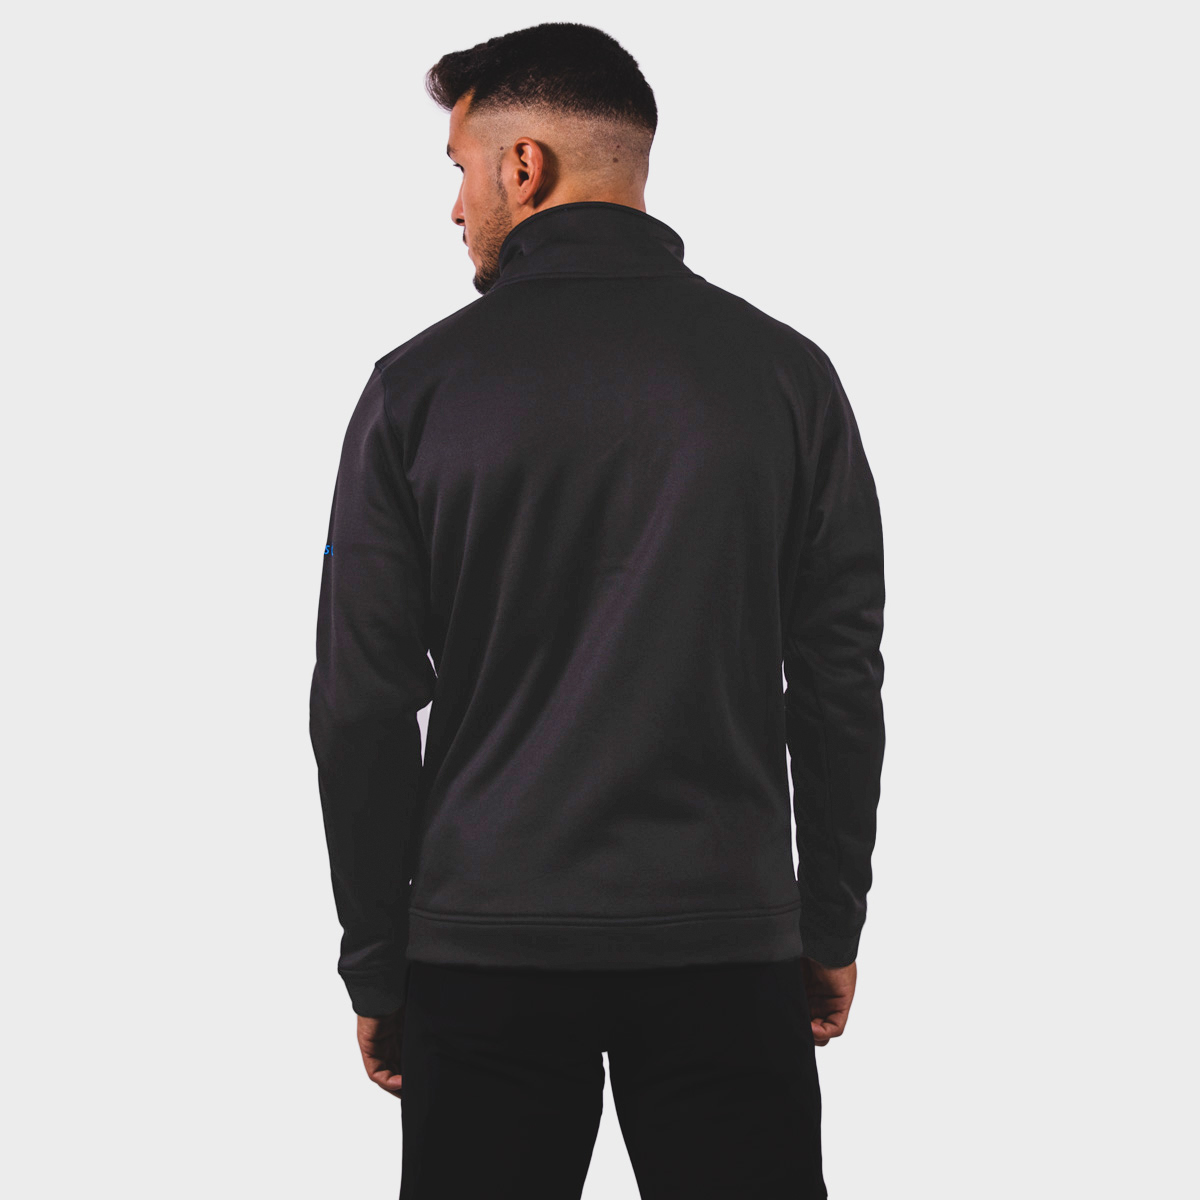 MAN'S KOUSSI JACKET PULLOVER WITHOUT HOOD BLACK